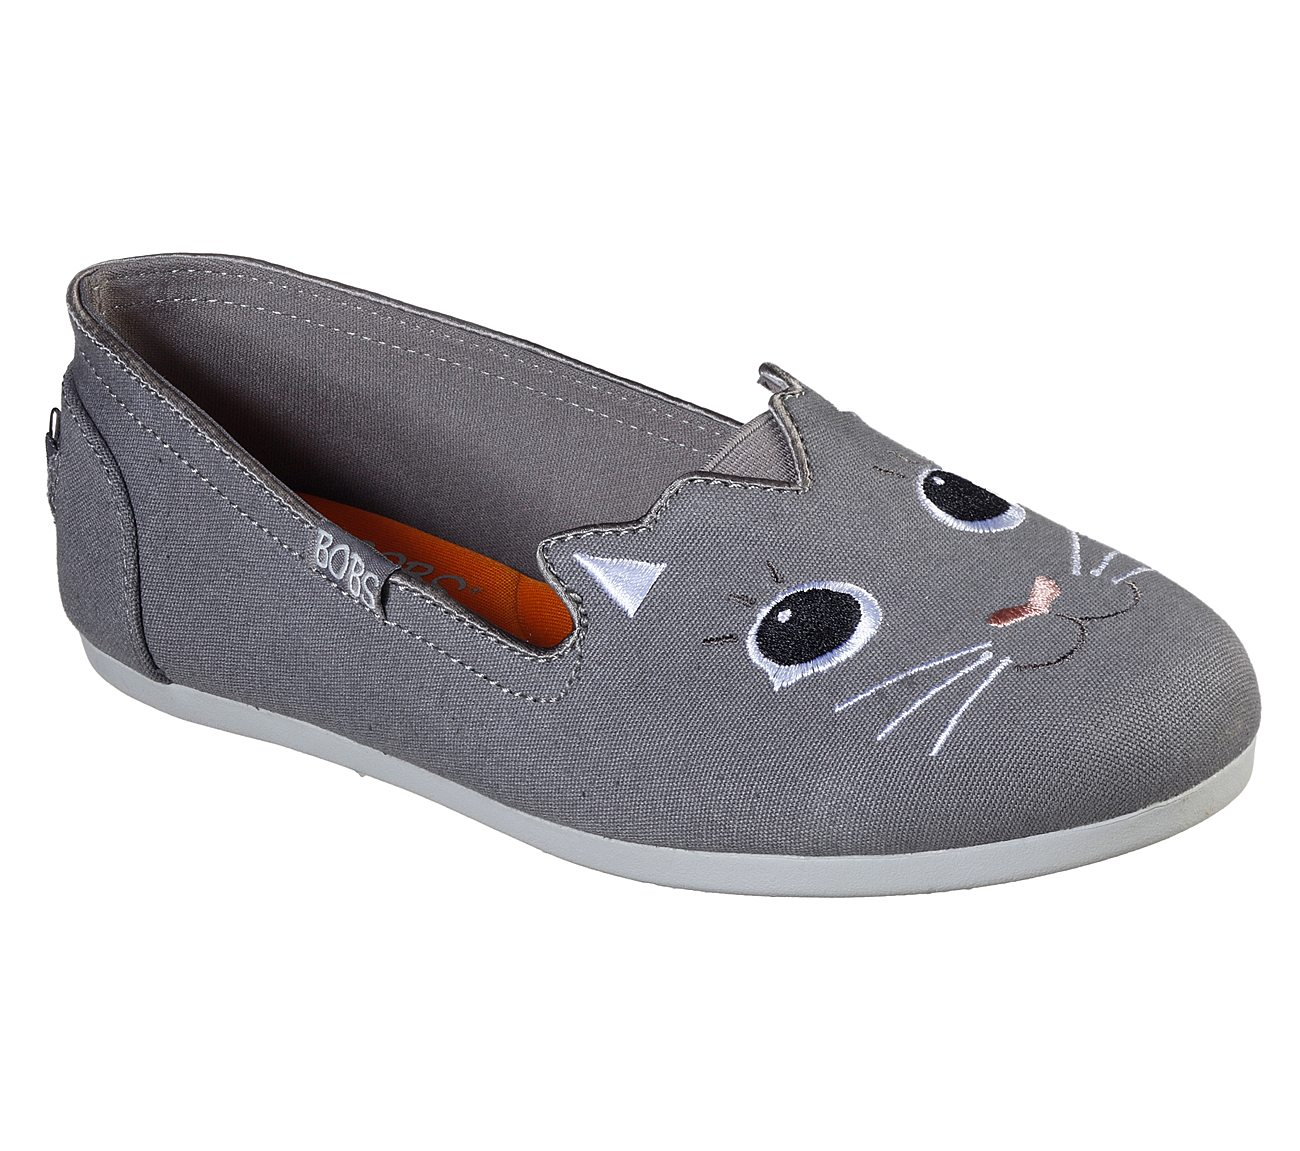 3173a1ed556 Buy SKECHERS BOBS Plush - Cattitude BOBS Shoes only  45.00